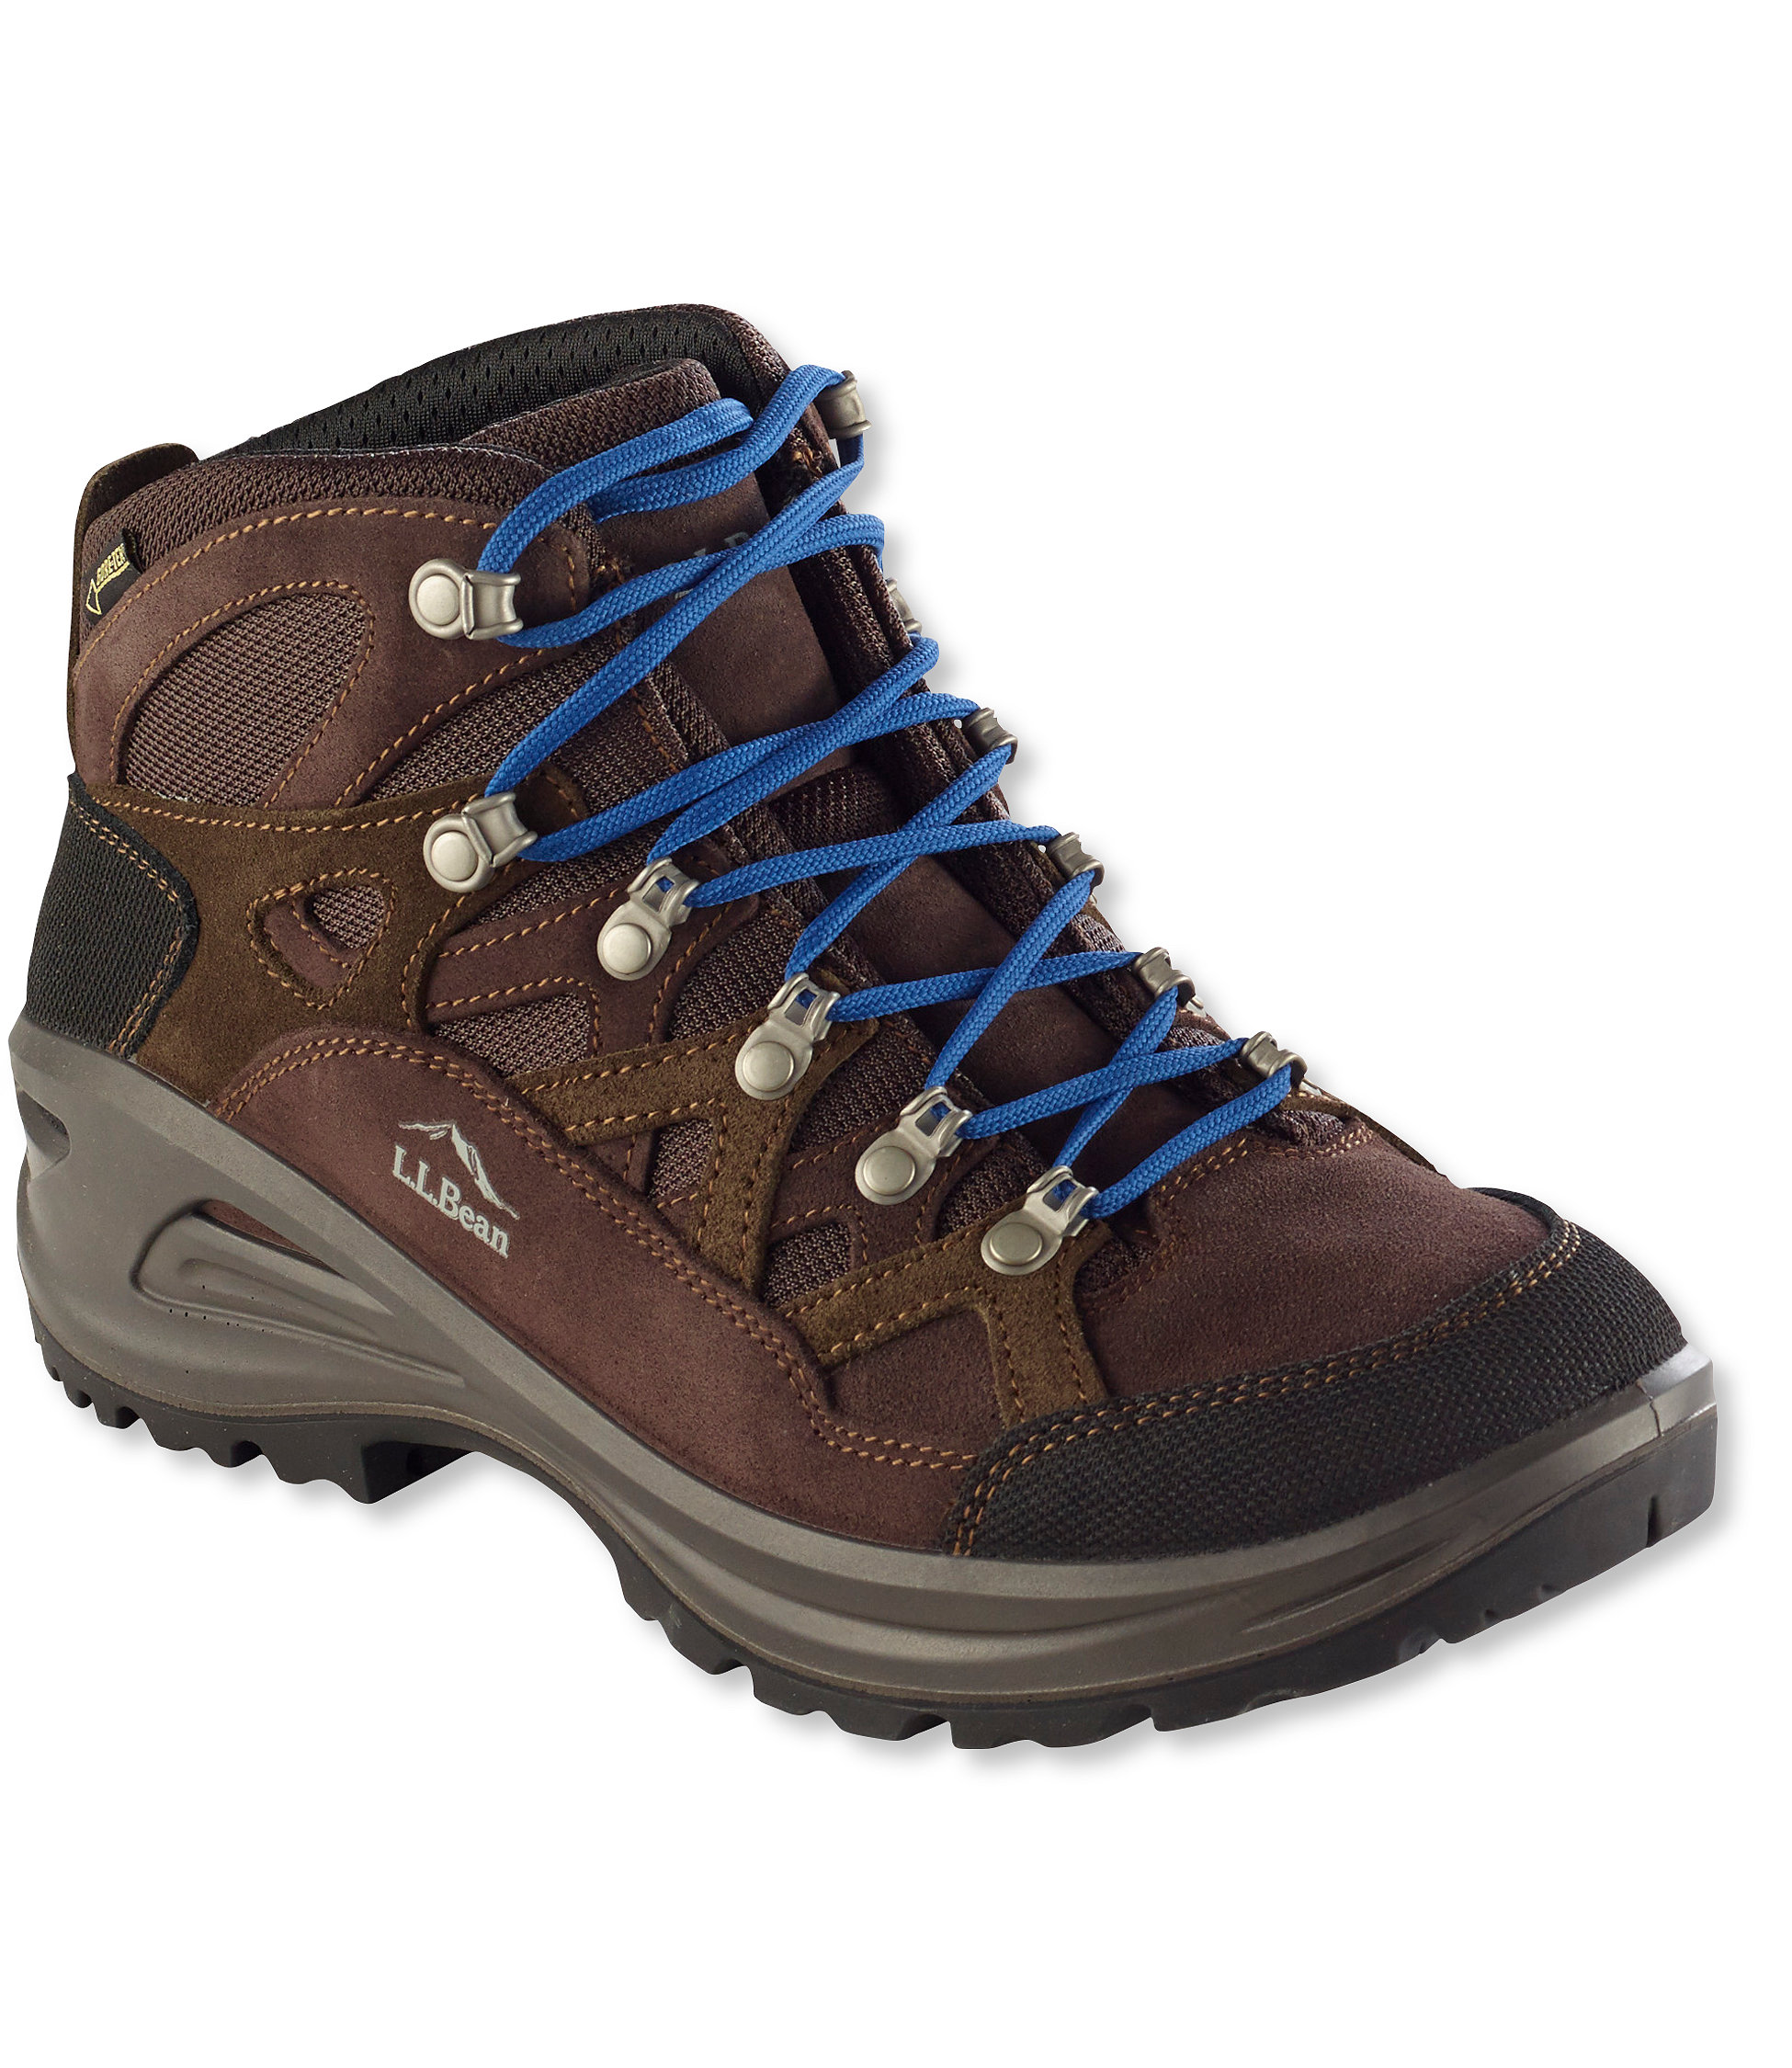 L.L.Bean Gore-Tex Mountain Treads, Mid-Cut